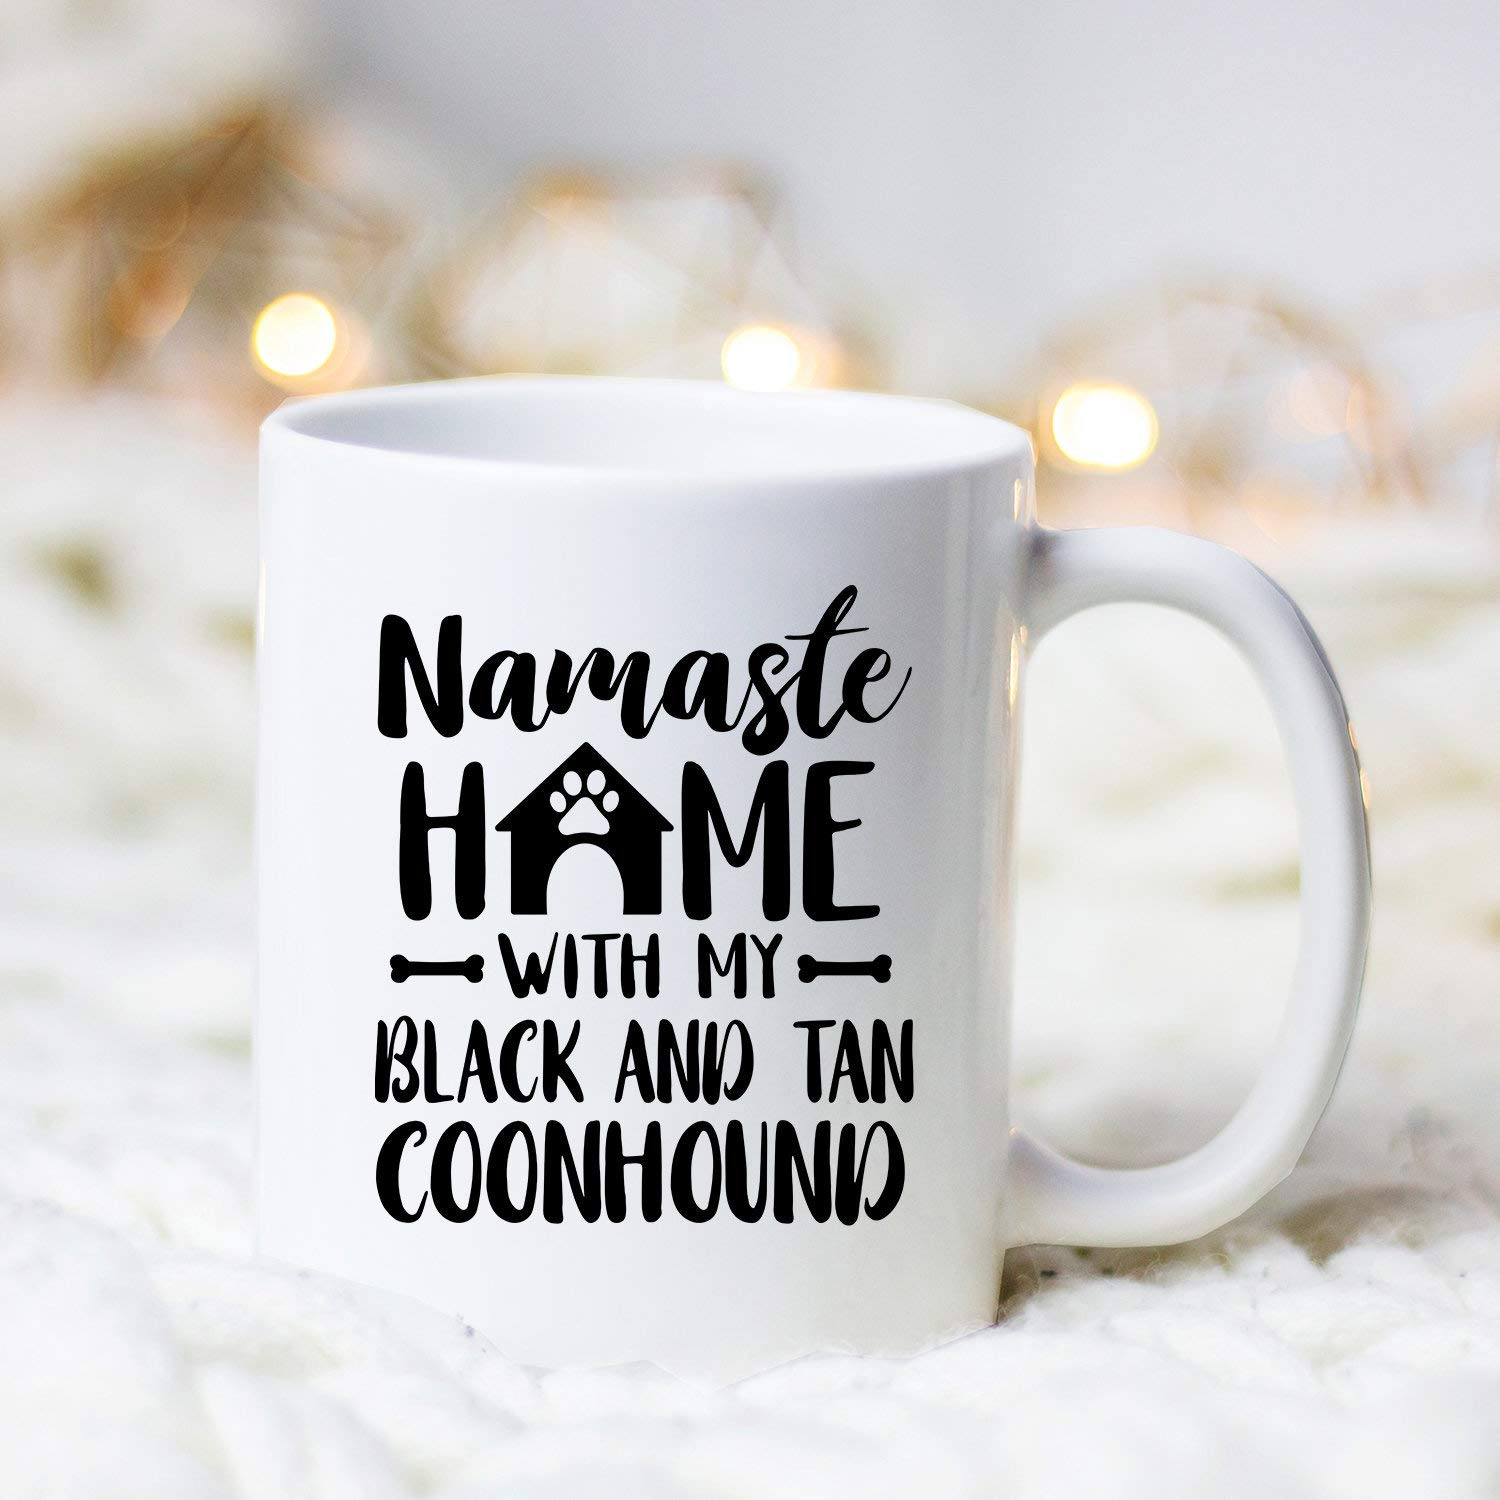 Namaste Home Black and Tan Coonhounds Mug Black and Tan Coonhound Gift Black Tan Coonhound Coonhound Gift Coonhound…